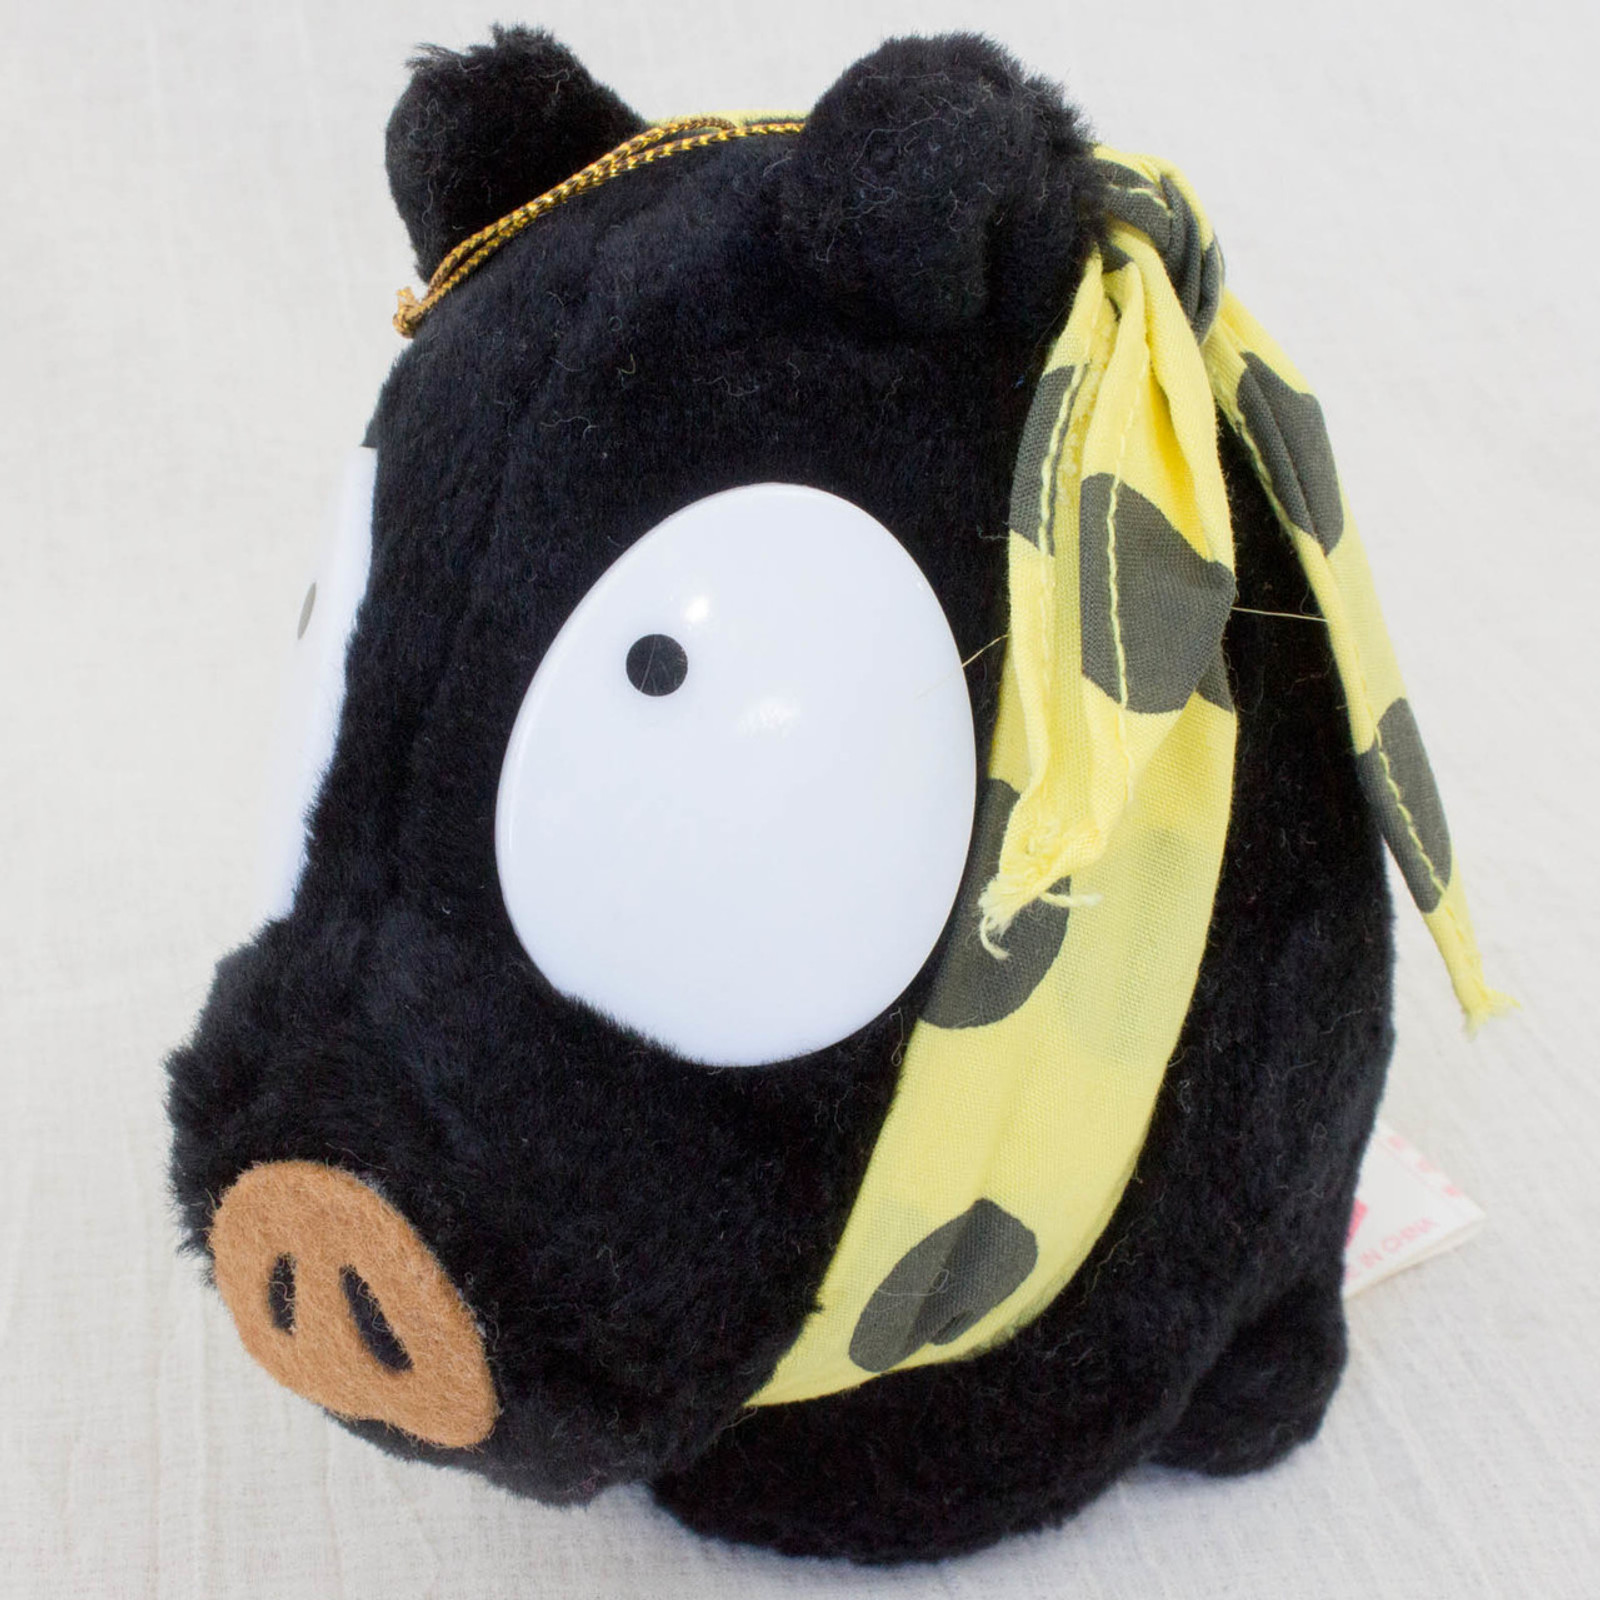 "Ranma 1/2 P-Chan Ryoga Pig 5"" Plush Doll Banpresto JAPAN ANIME MANGA FIGURE"